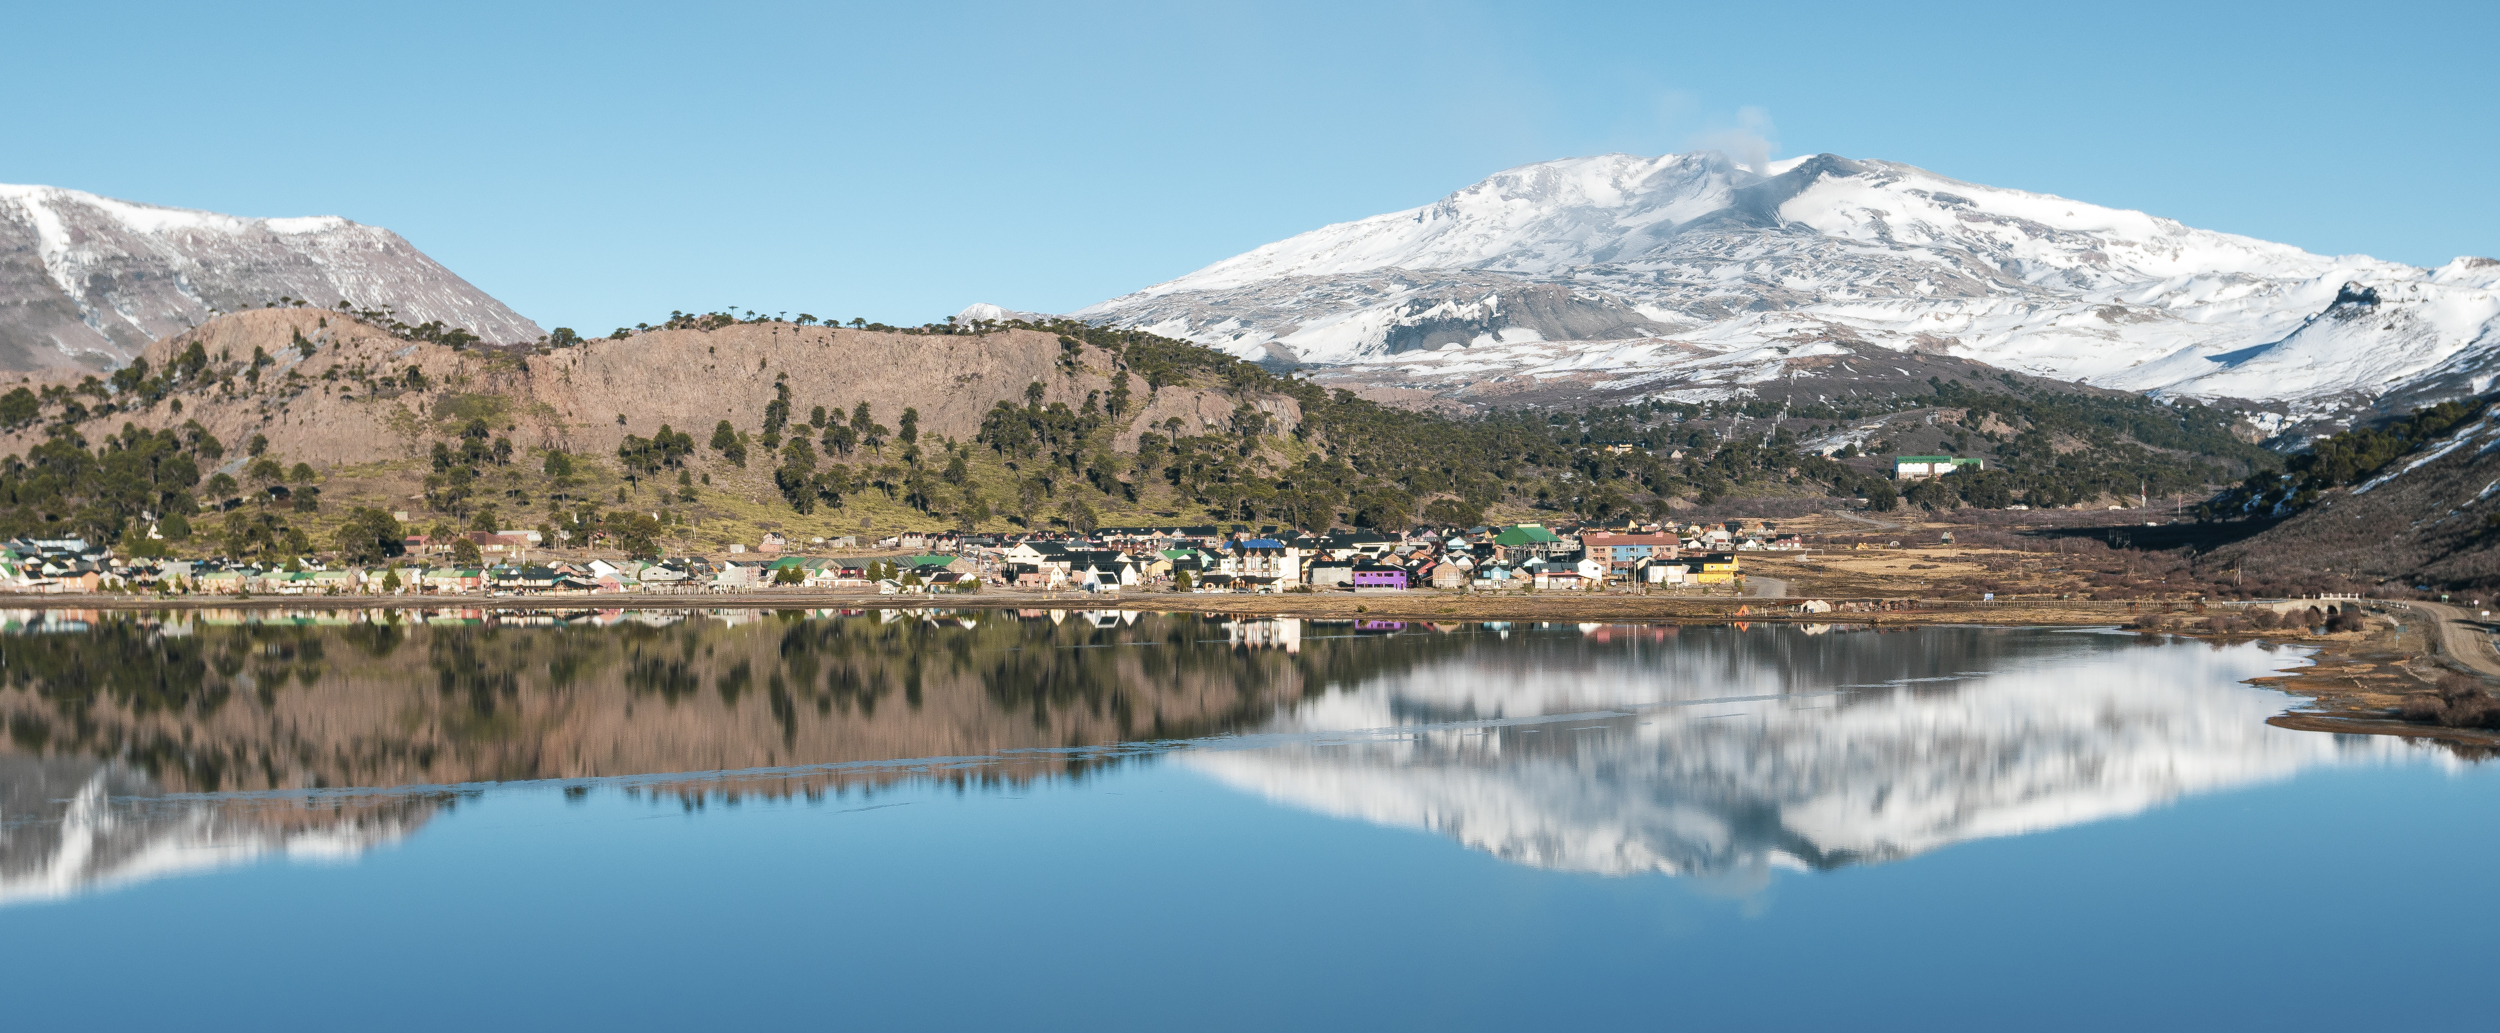 The town of Cavihavue at the base of Volcan Copahue.